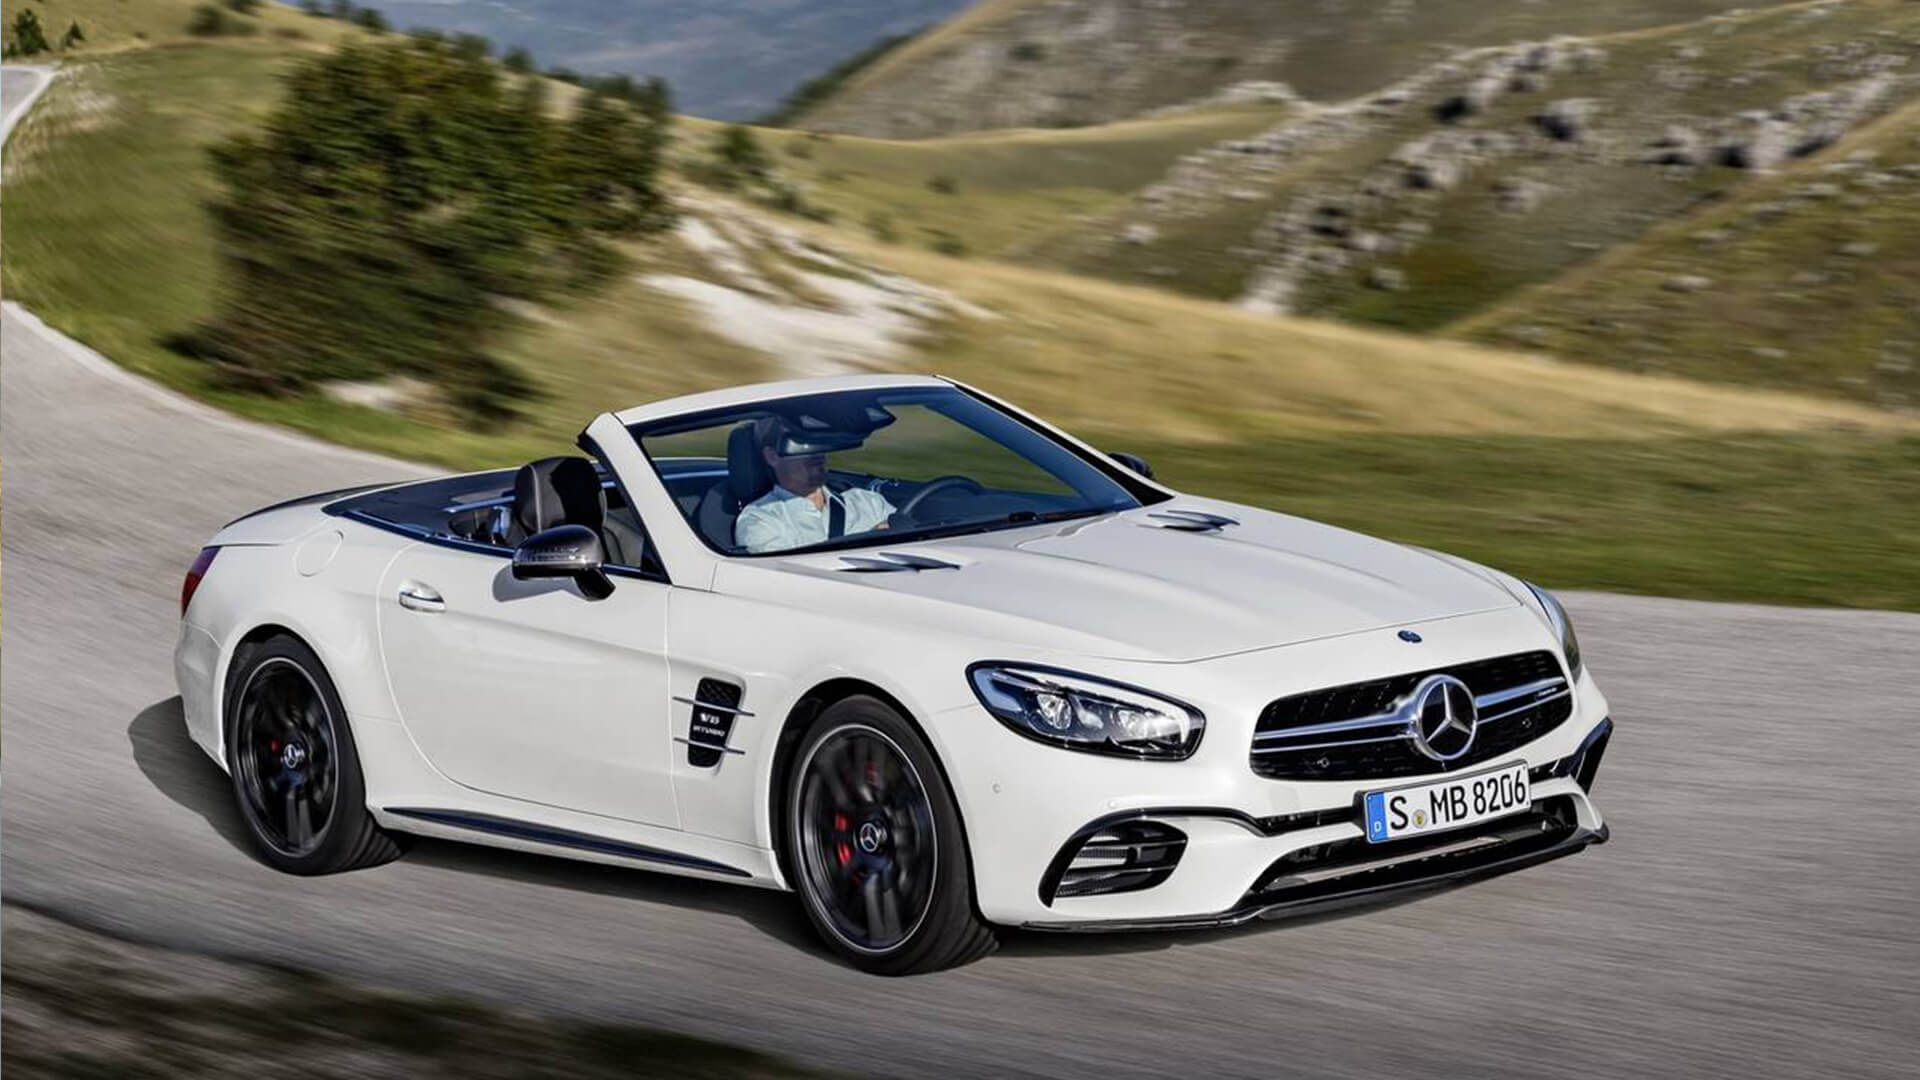 luxury sports cars – 2016 Mercedes Benz SL Class Pho2Car